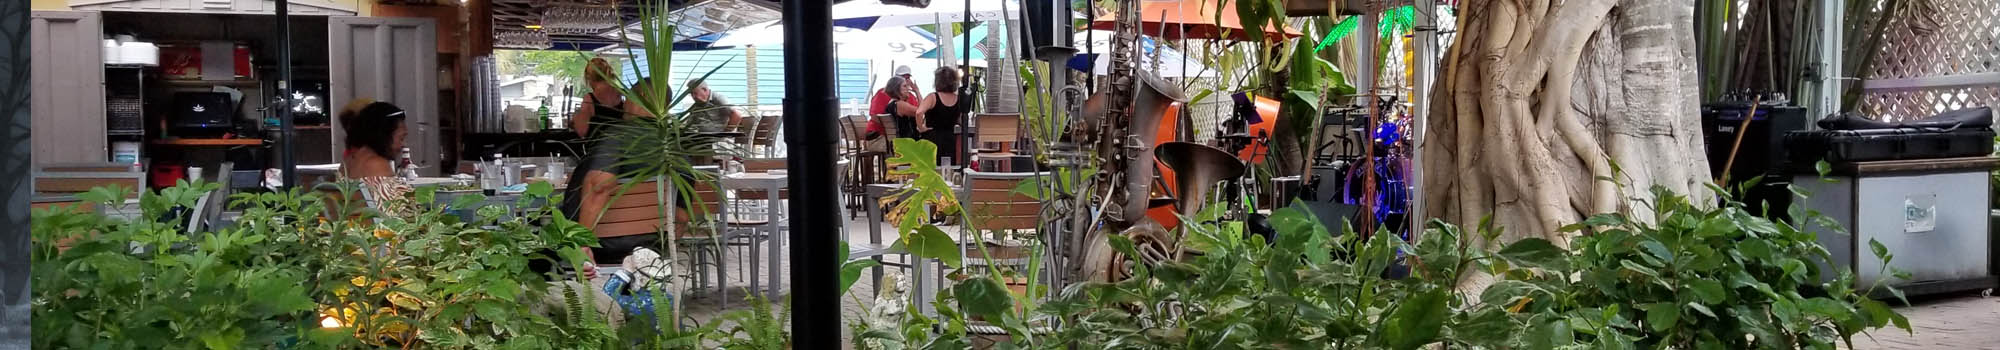 Relax and enjoy your day with unique cuisines and drinks on Dearborn Street in Englewood, FL